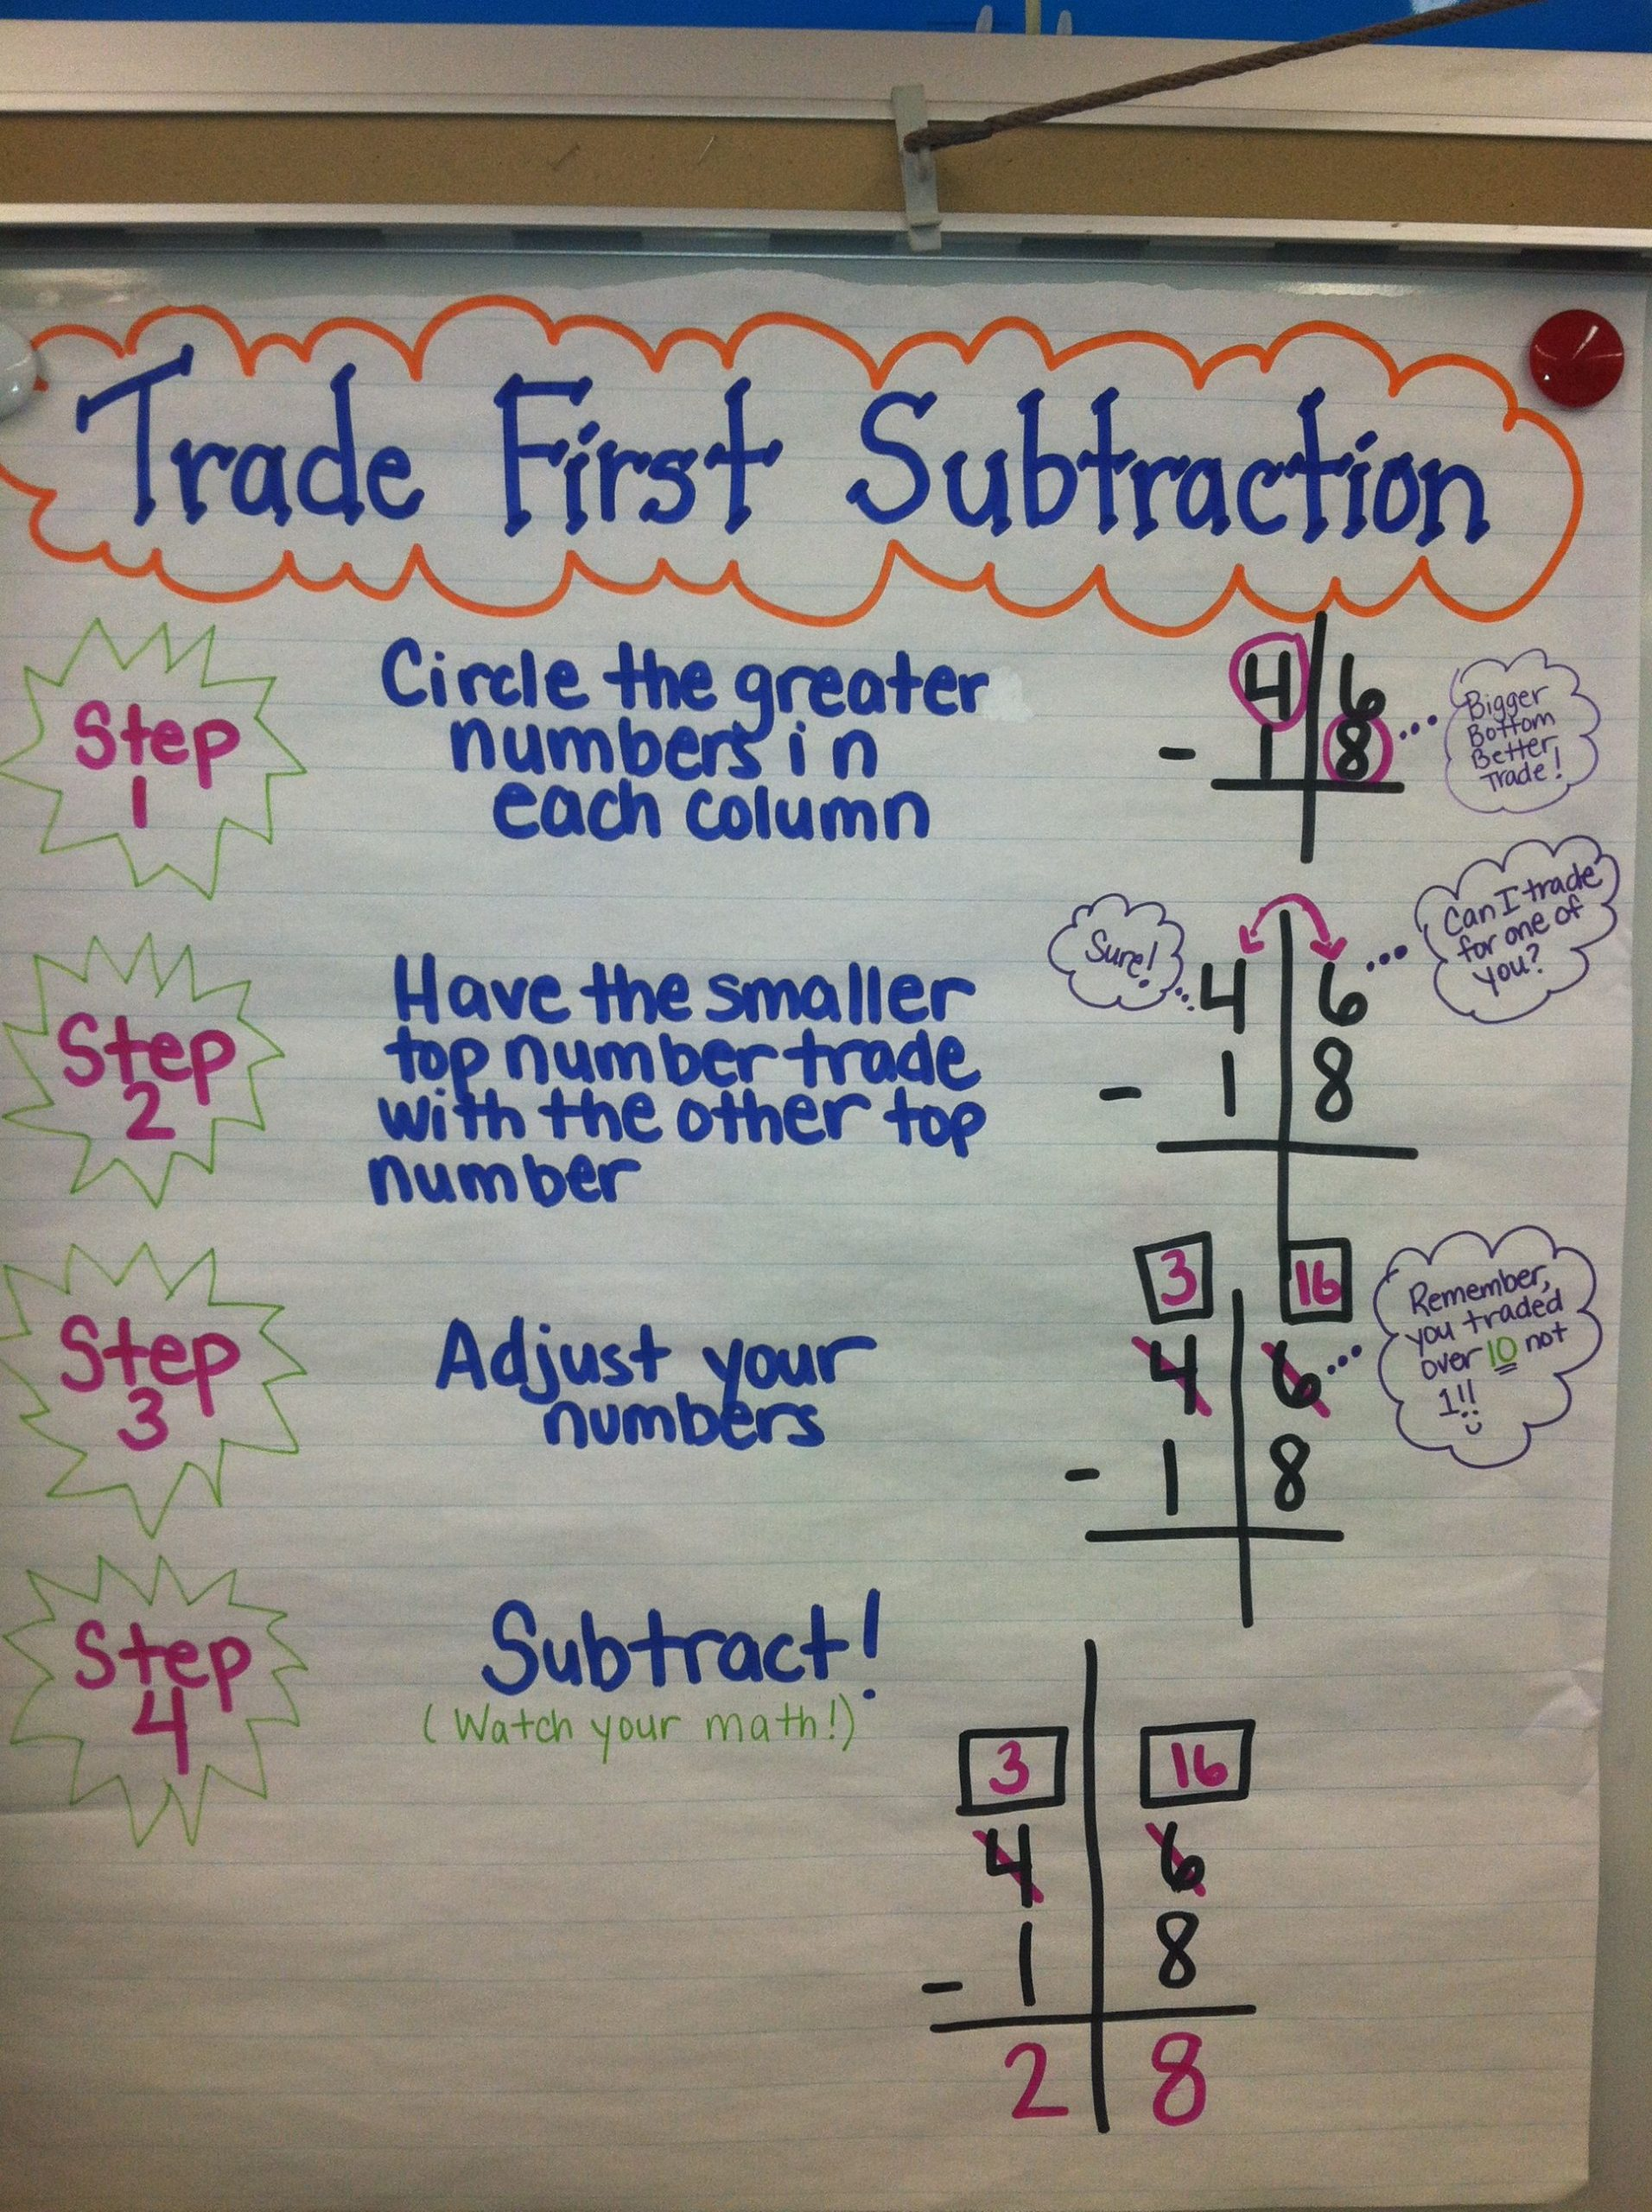 Trade first subtraction